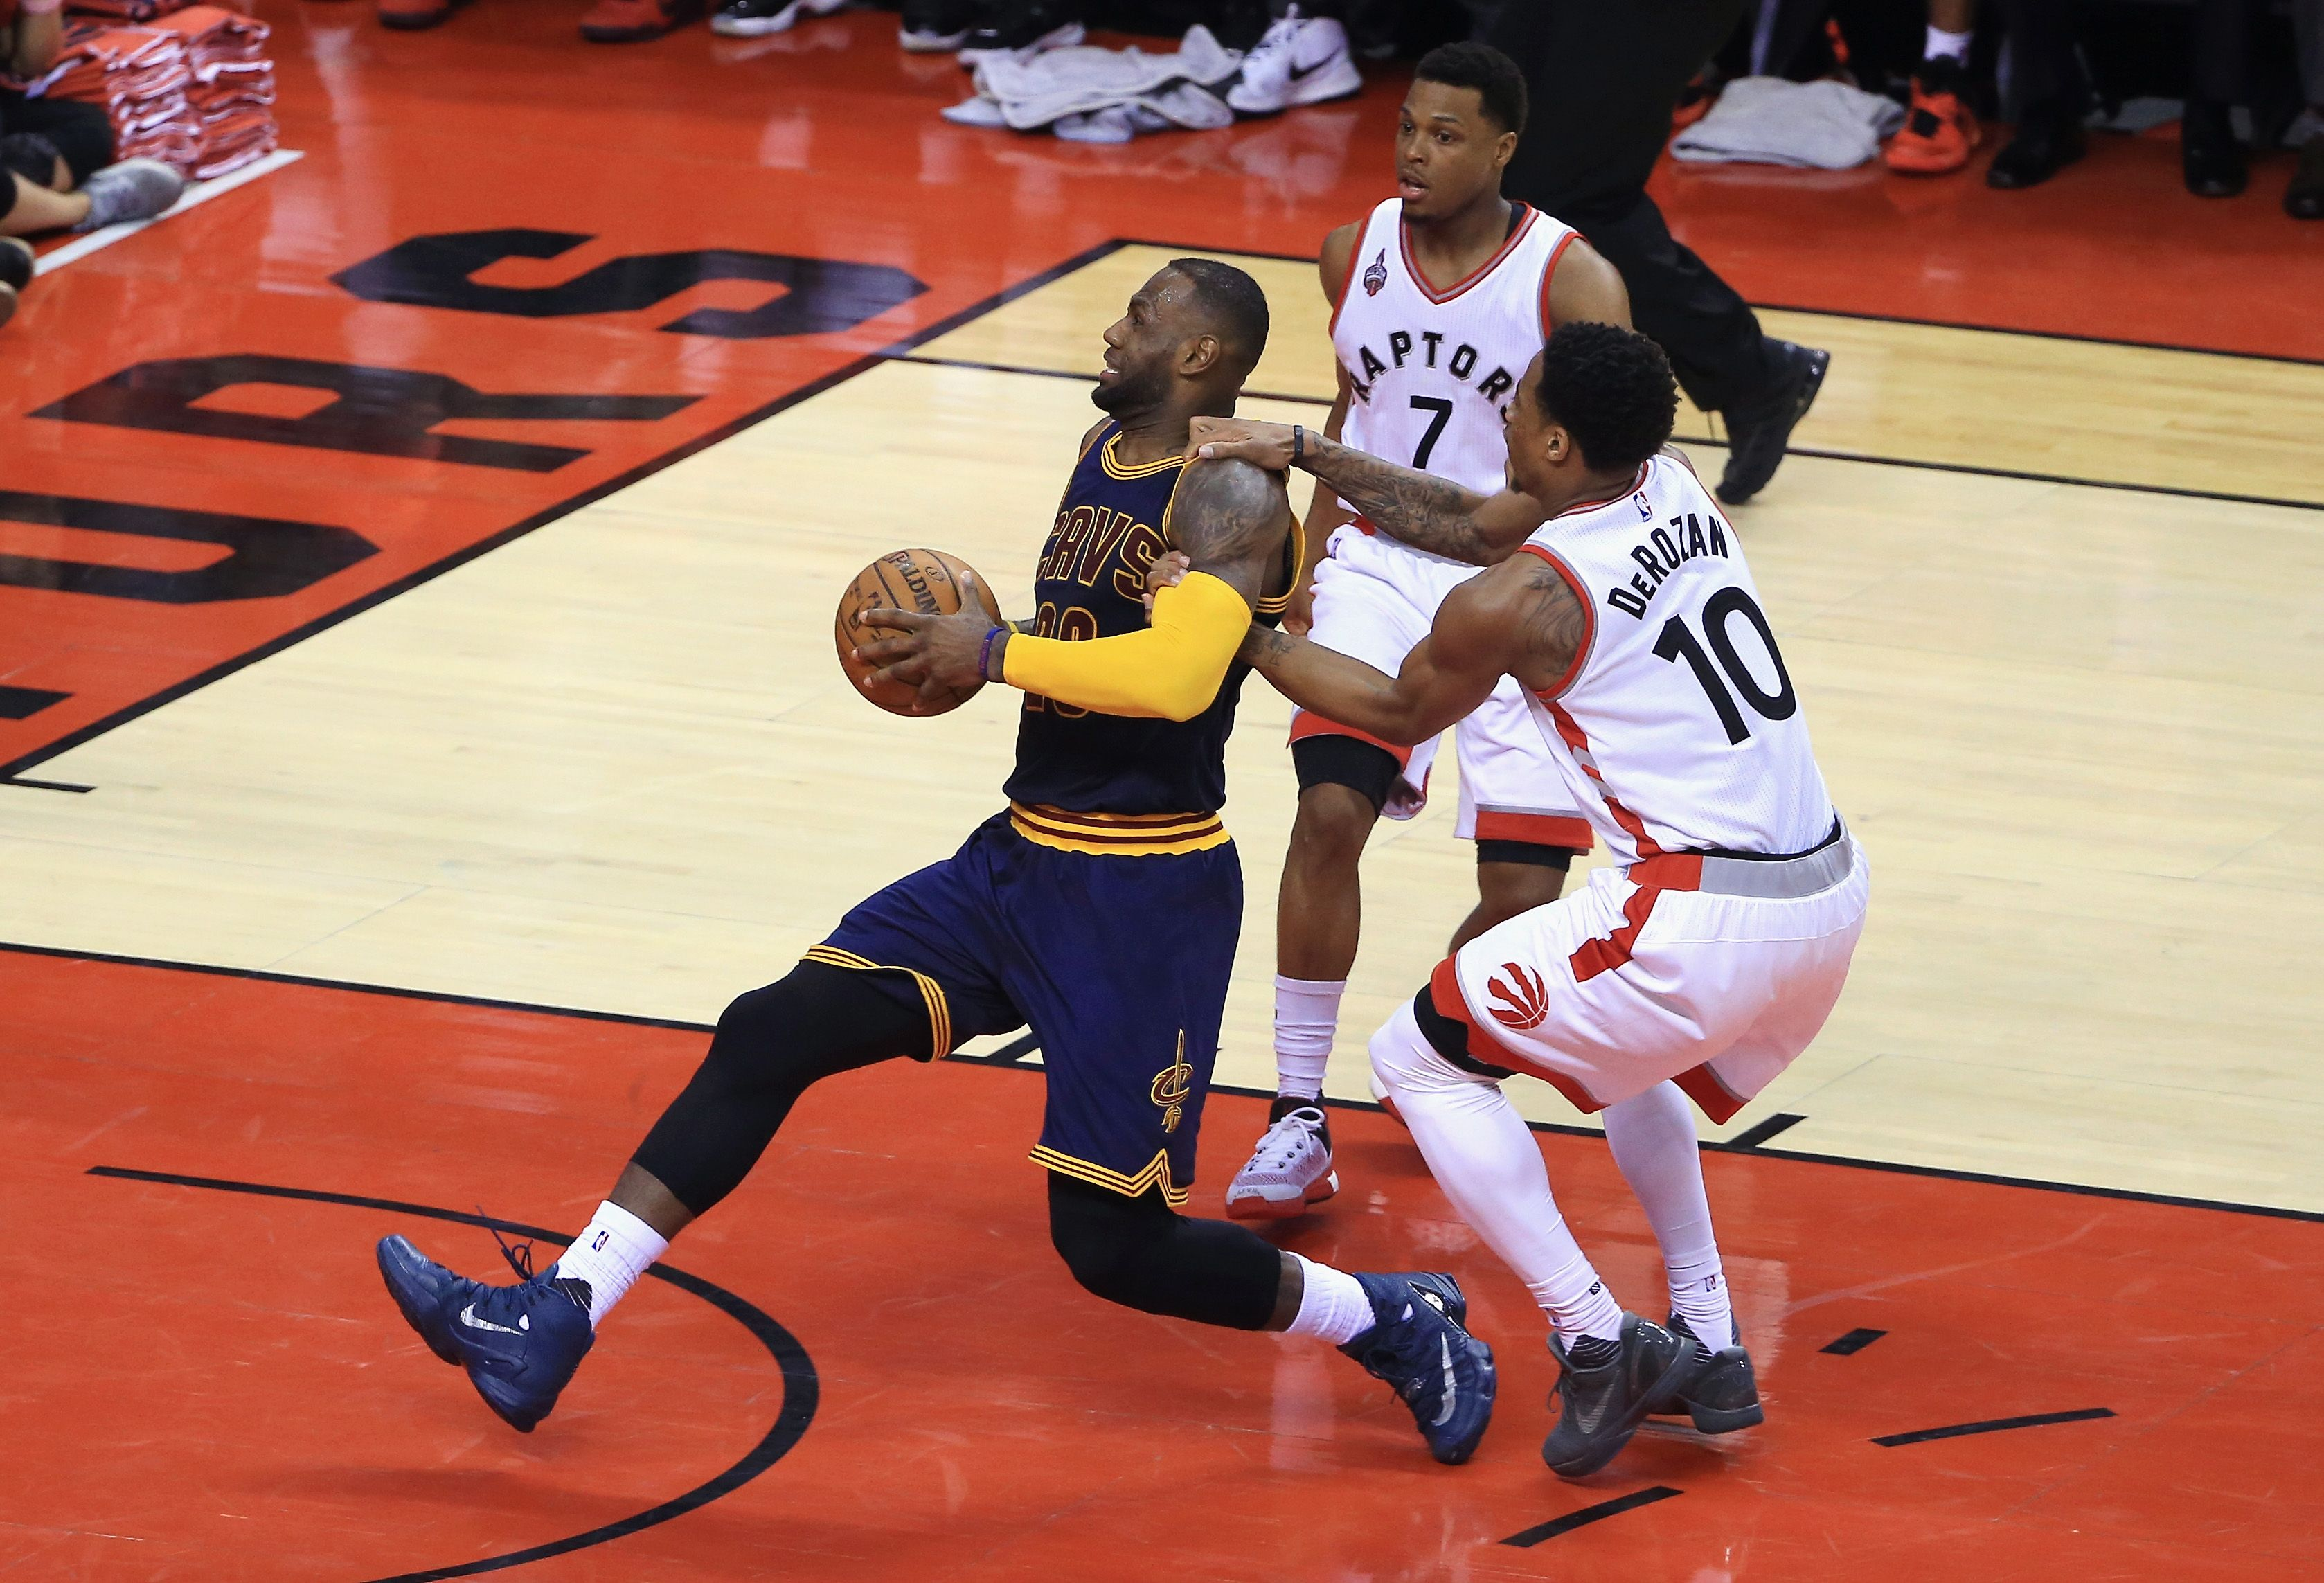 DeMar DeRozan and Kyle Lowry stopping LeBron James